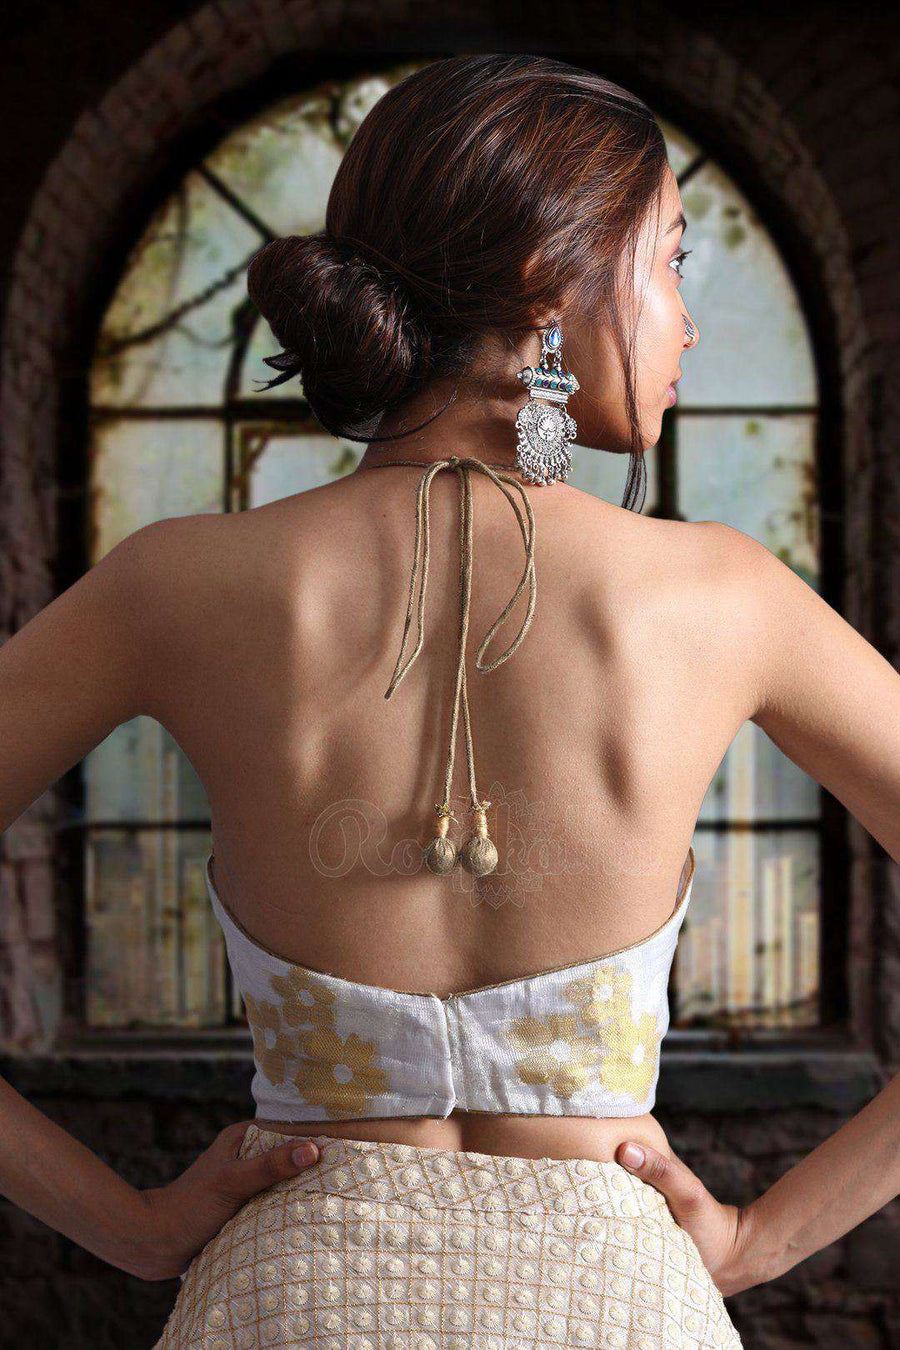 Halter Neck Chanderi BLouse Blouse Roopkatha - A Story of Art